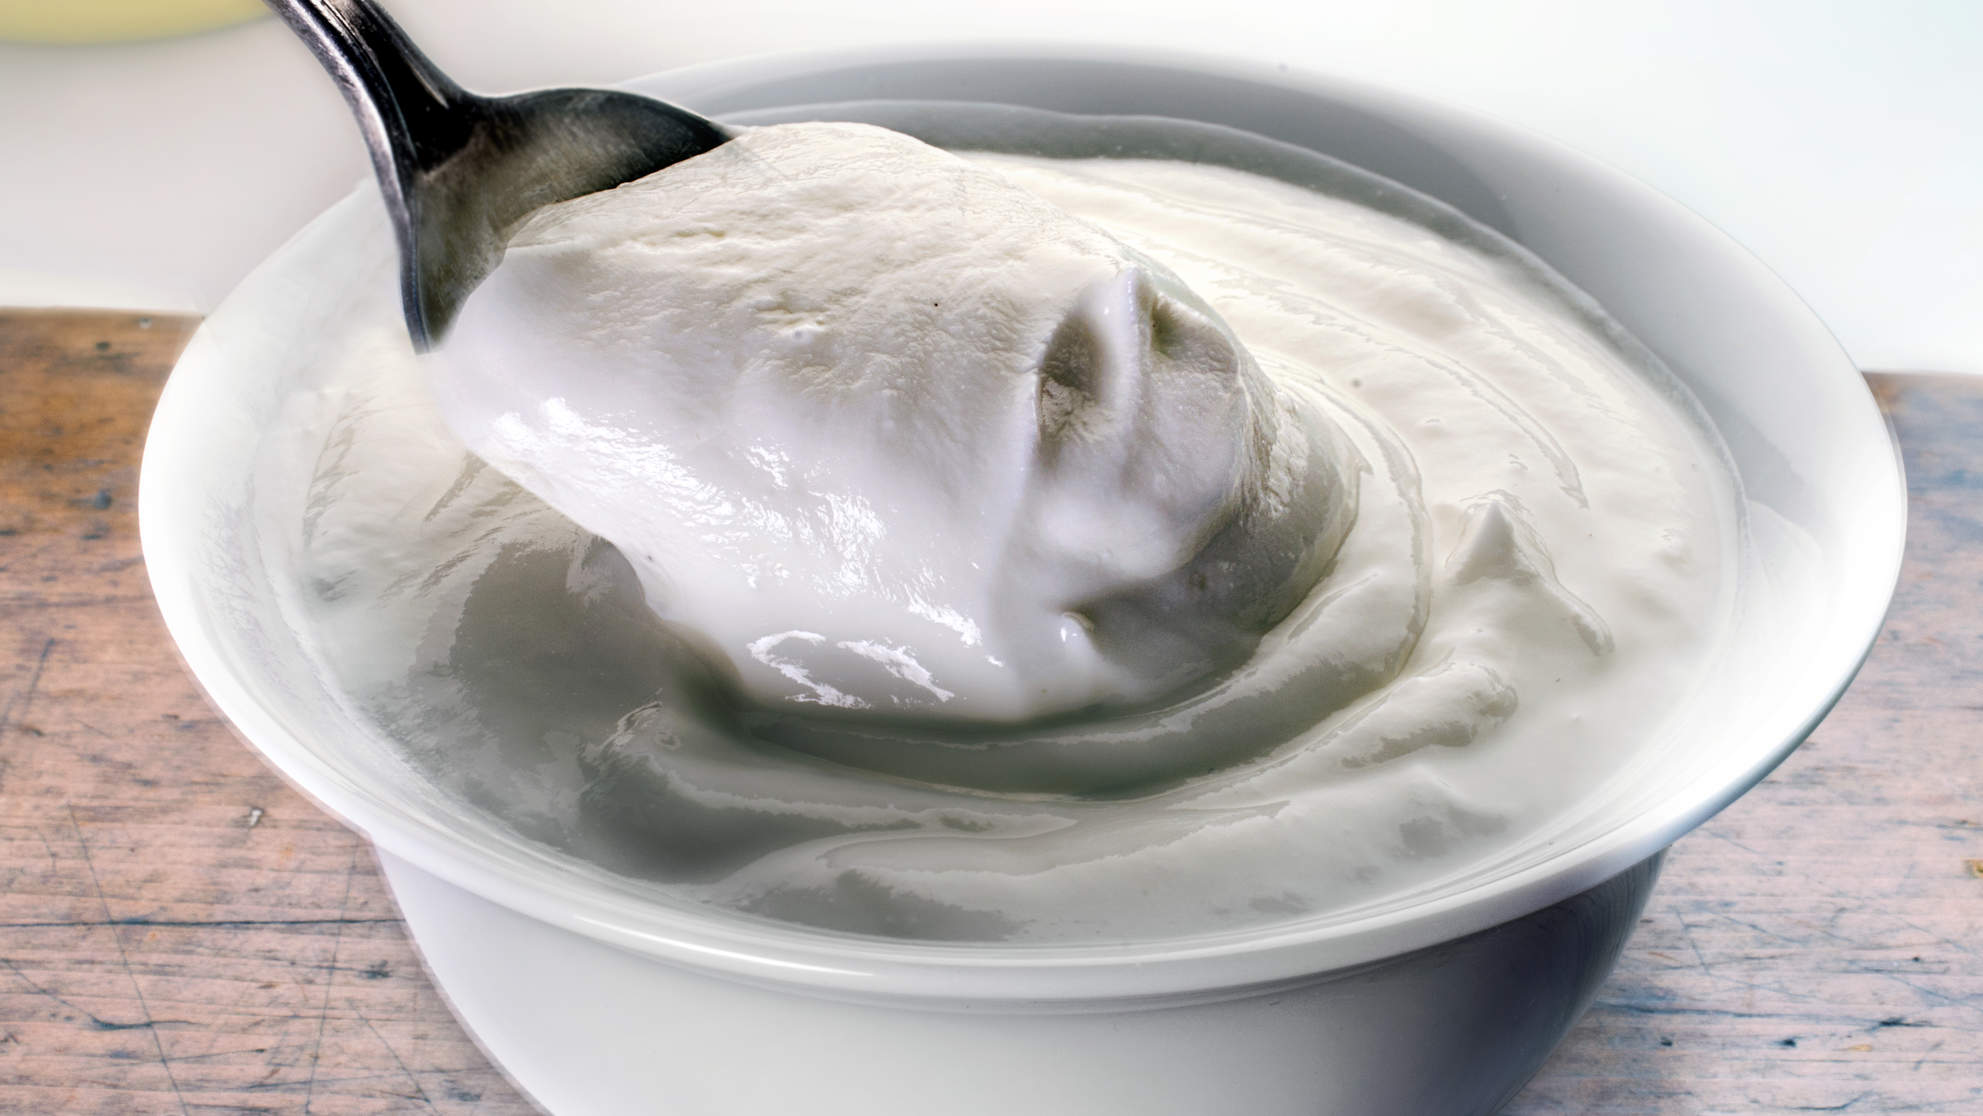 Yoplait Just Launched a New Line of Yogurt With a LOT Less Sugar